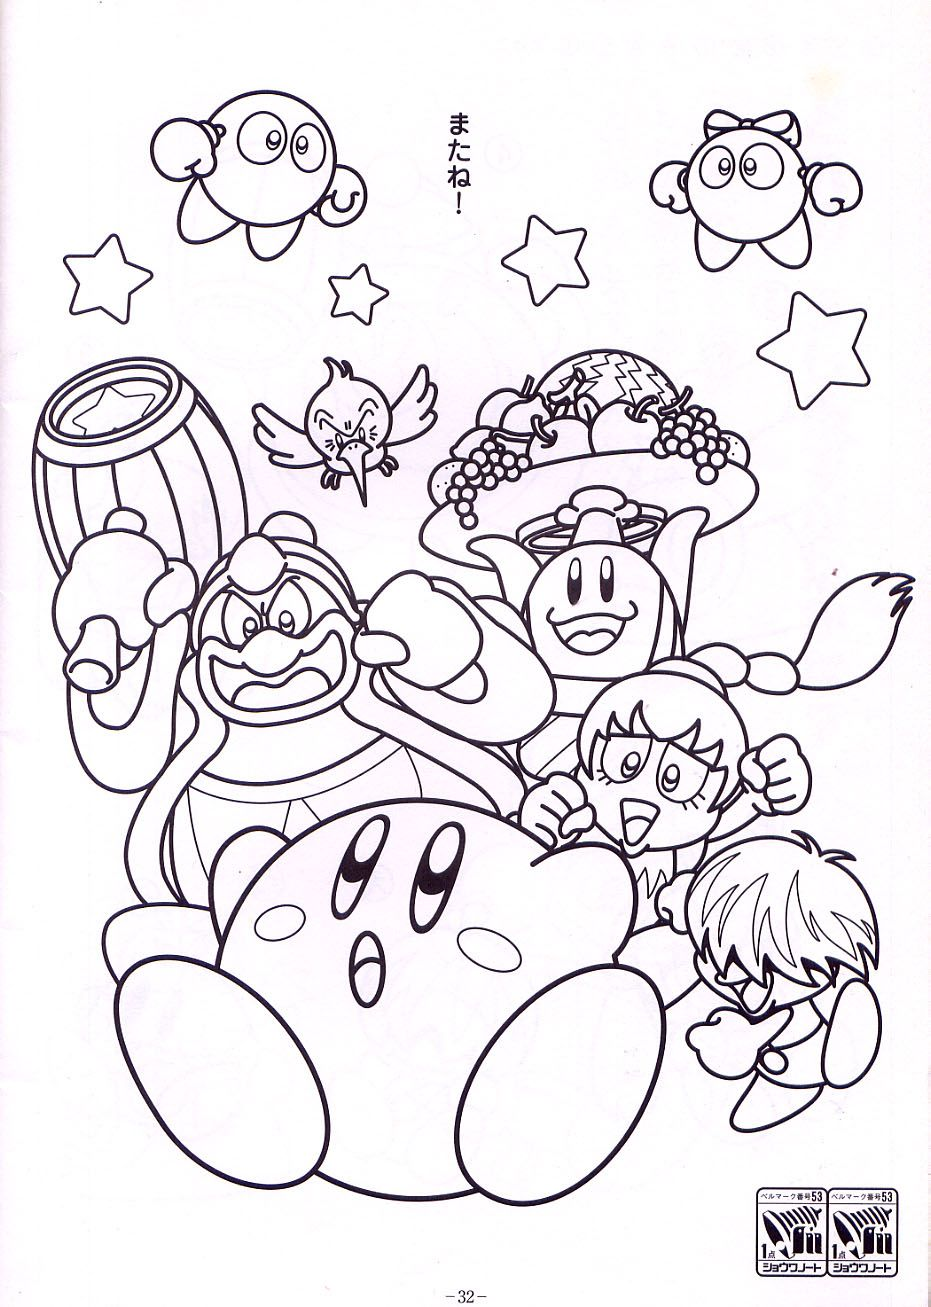 Free coloring pages kirby - Kirby Coloring Page